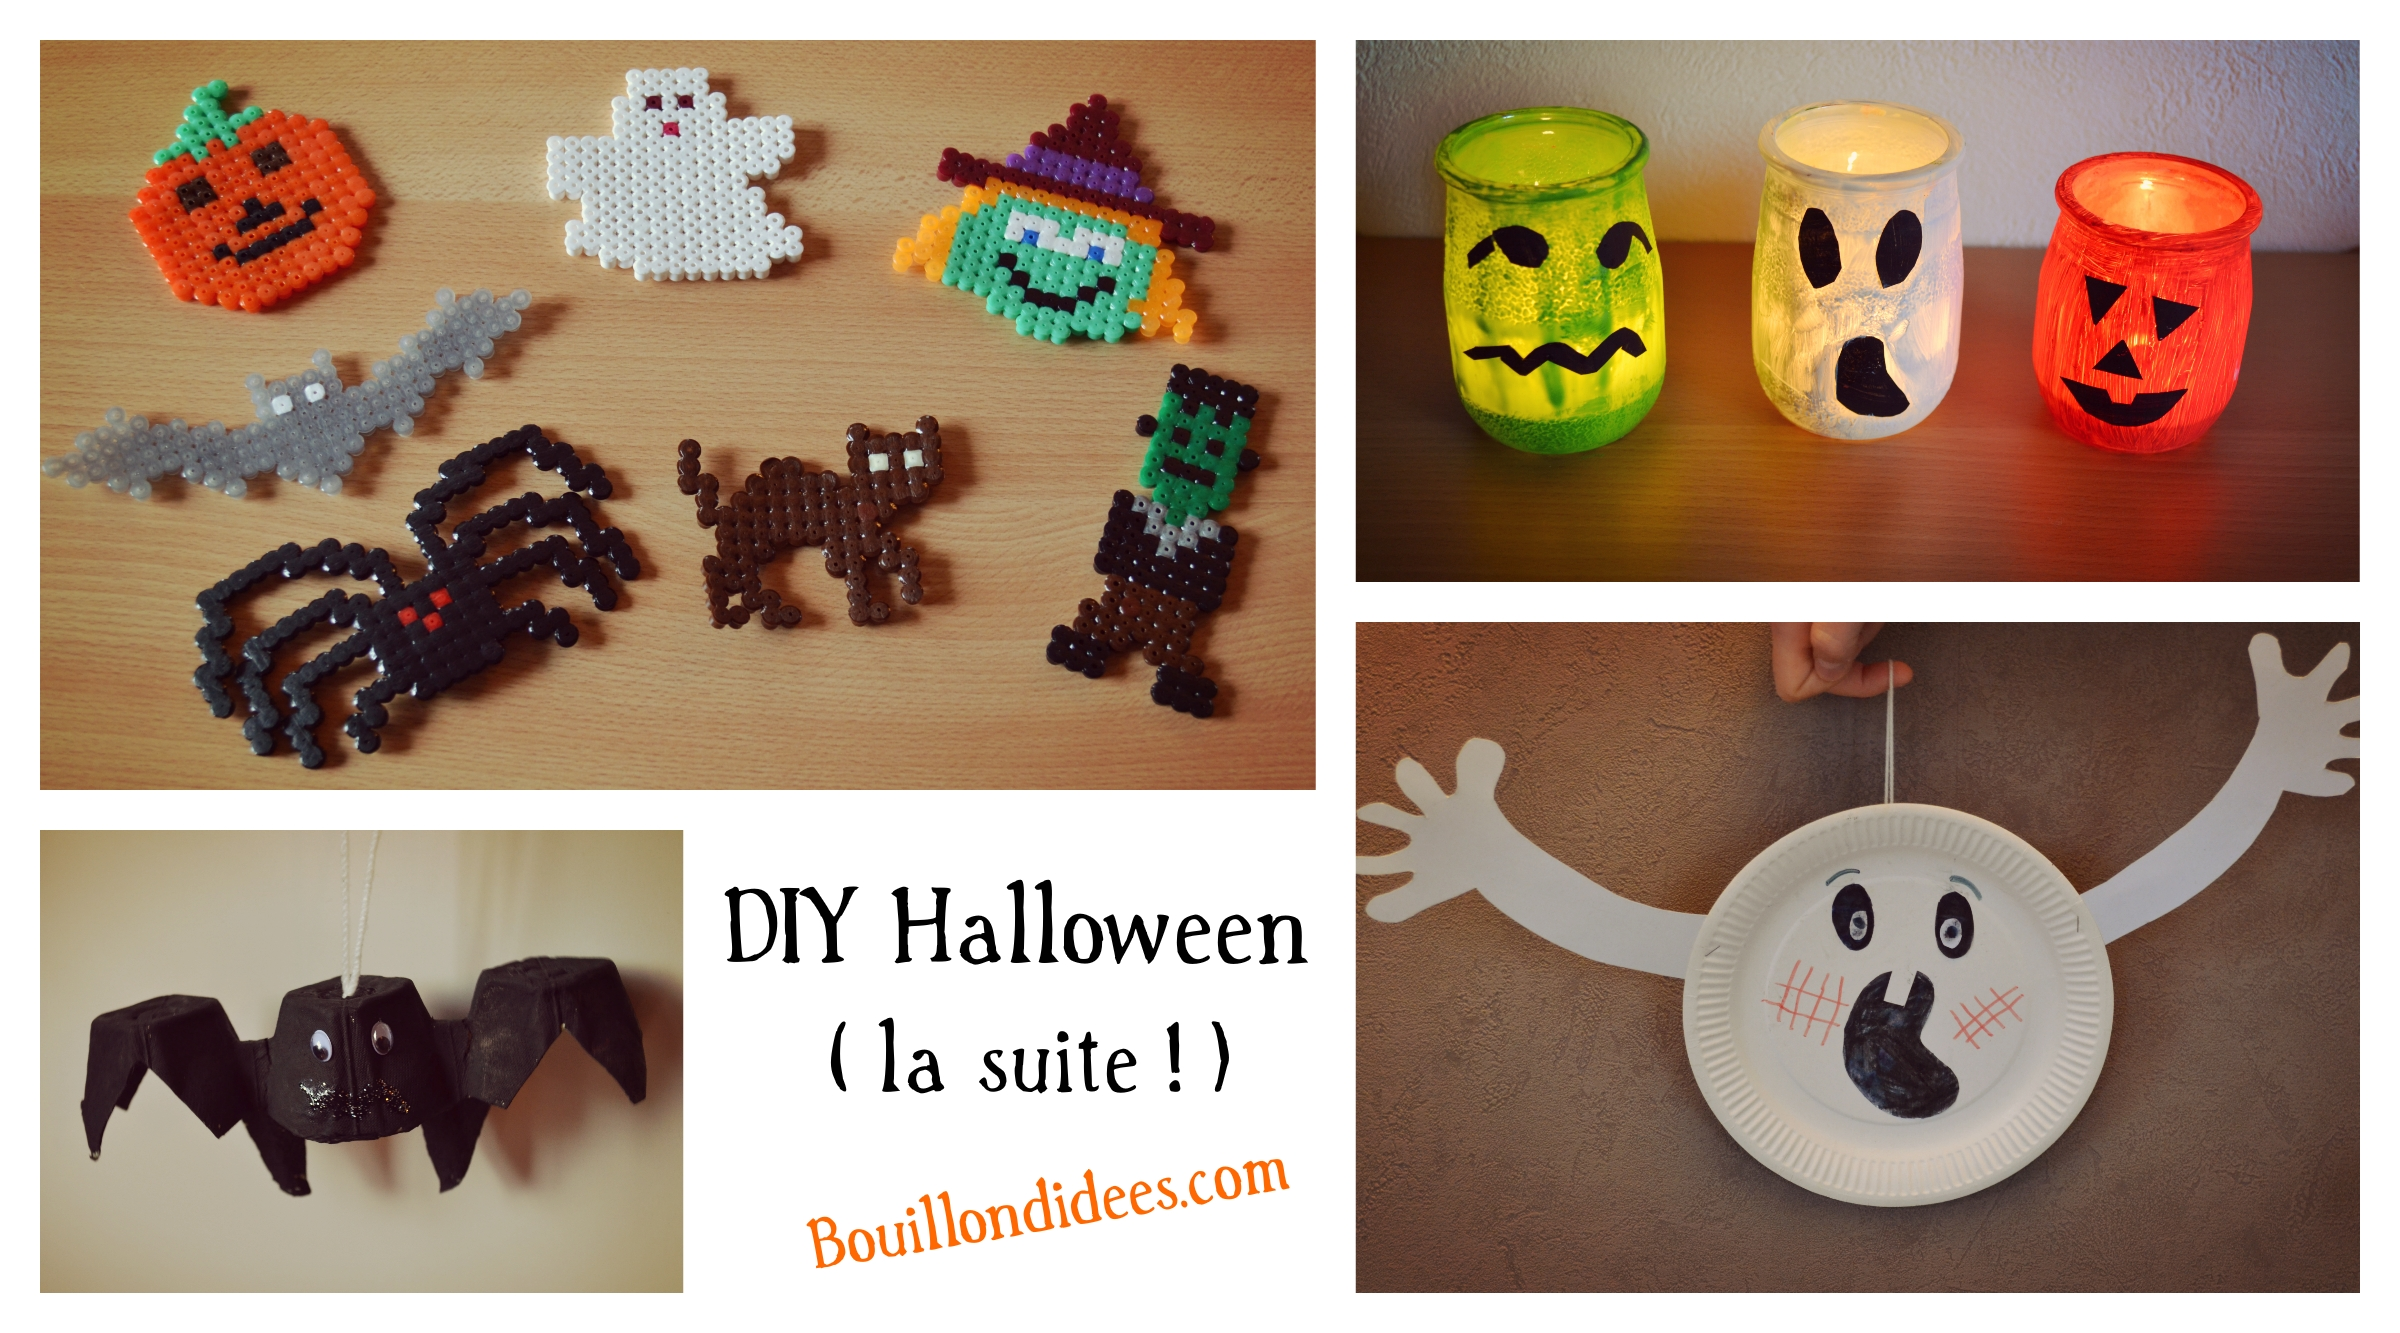 diy halloween la suite fant me chauve souris on continue. Black Bedroom Furniture Sets. Home Design Ideas